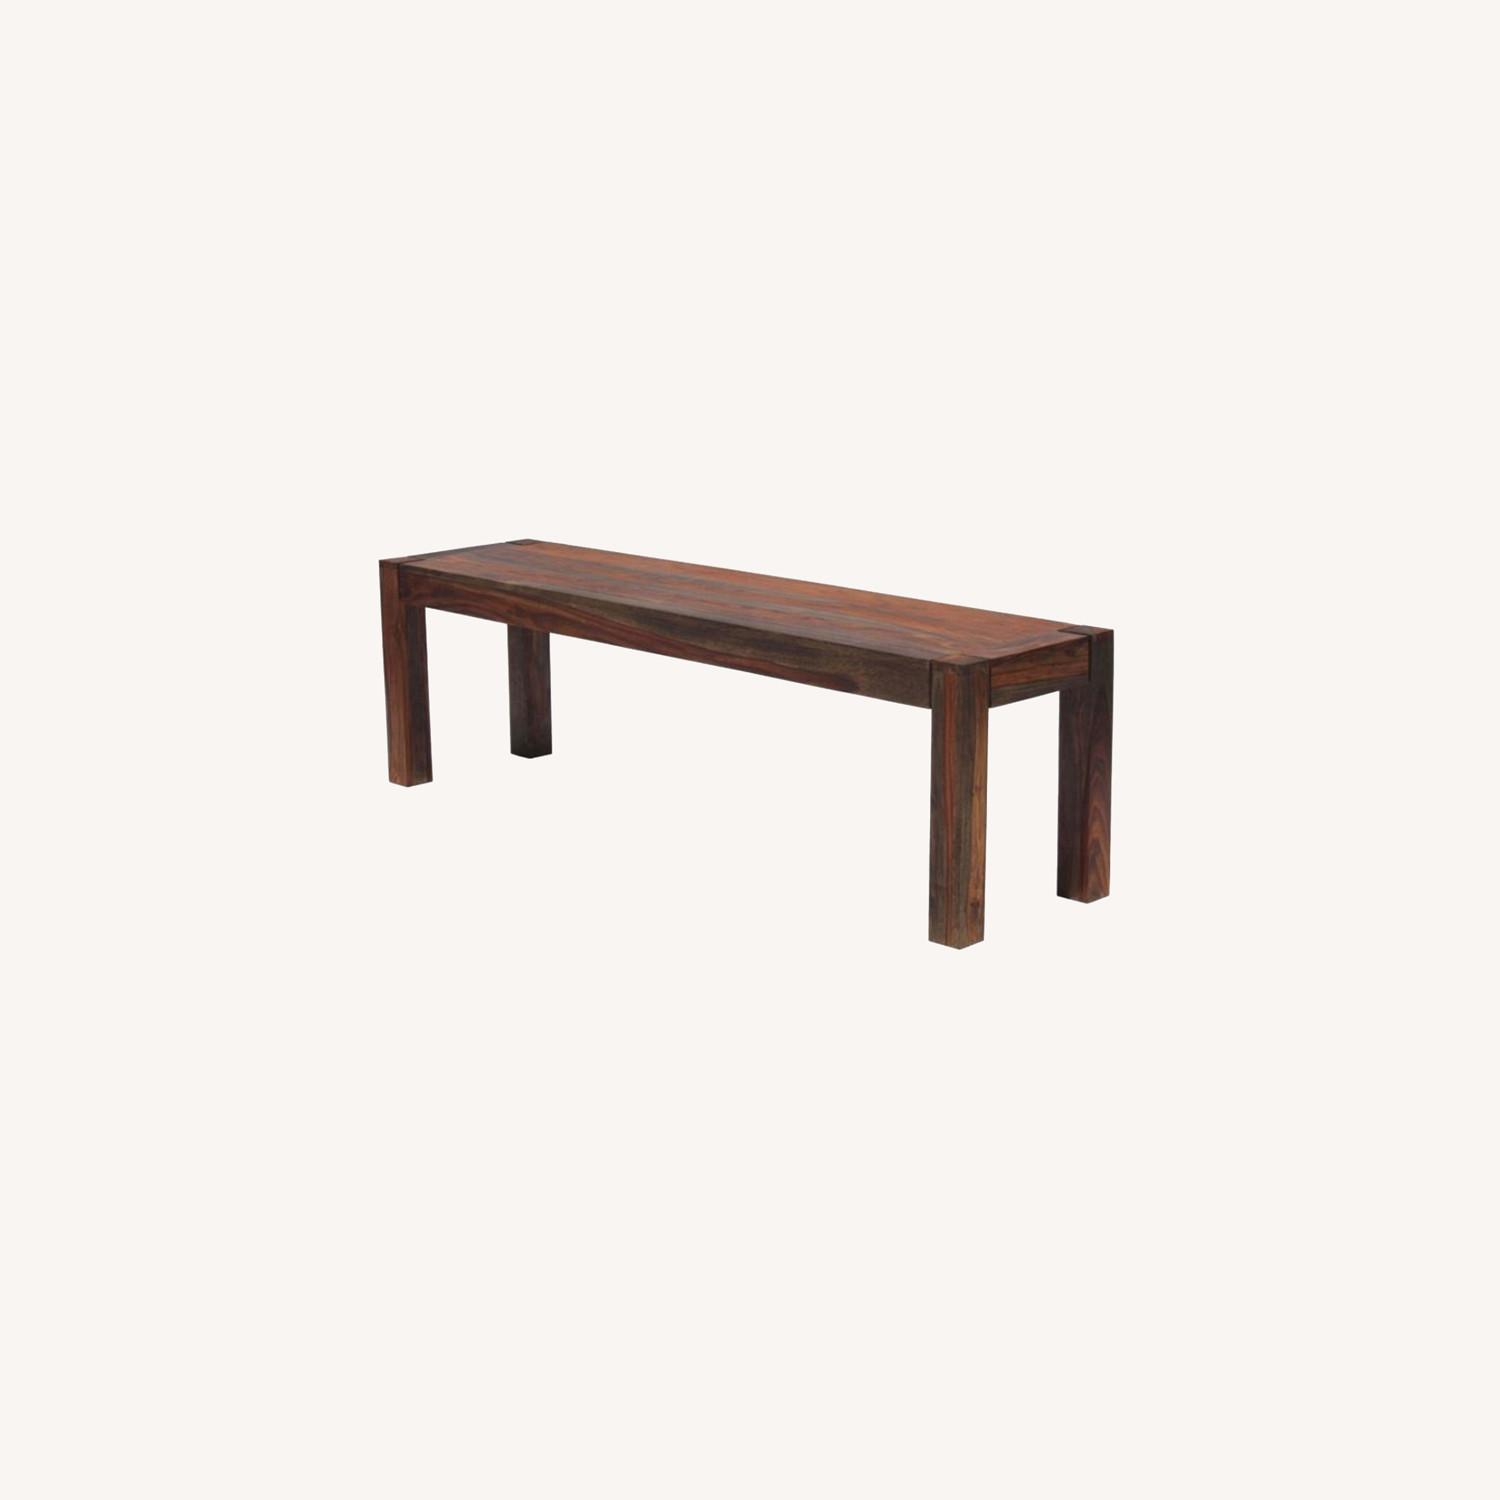 Bench Crafted In Solid Sheesham Wood - image-4